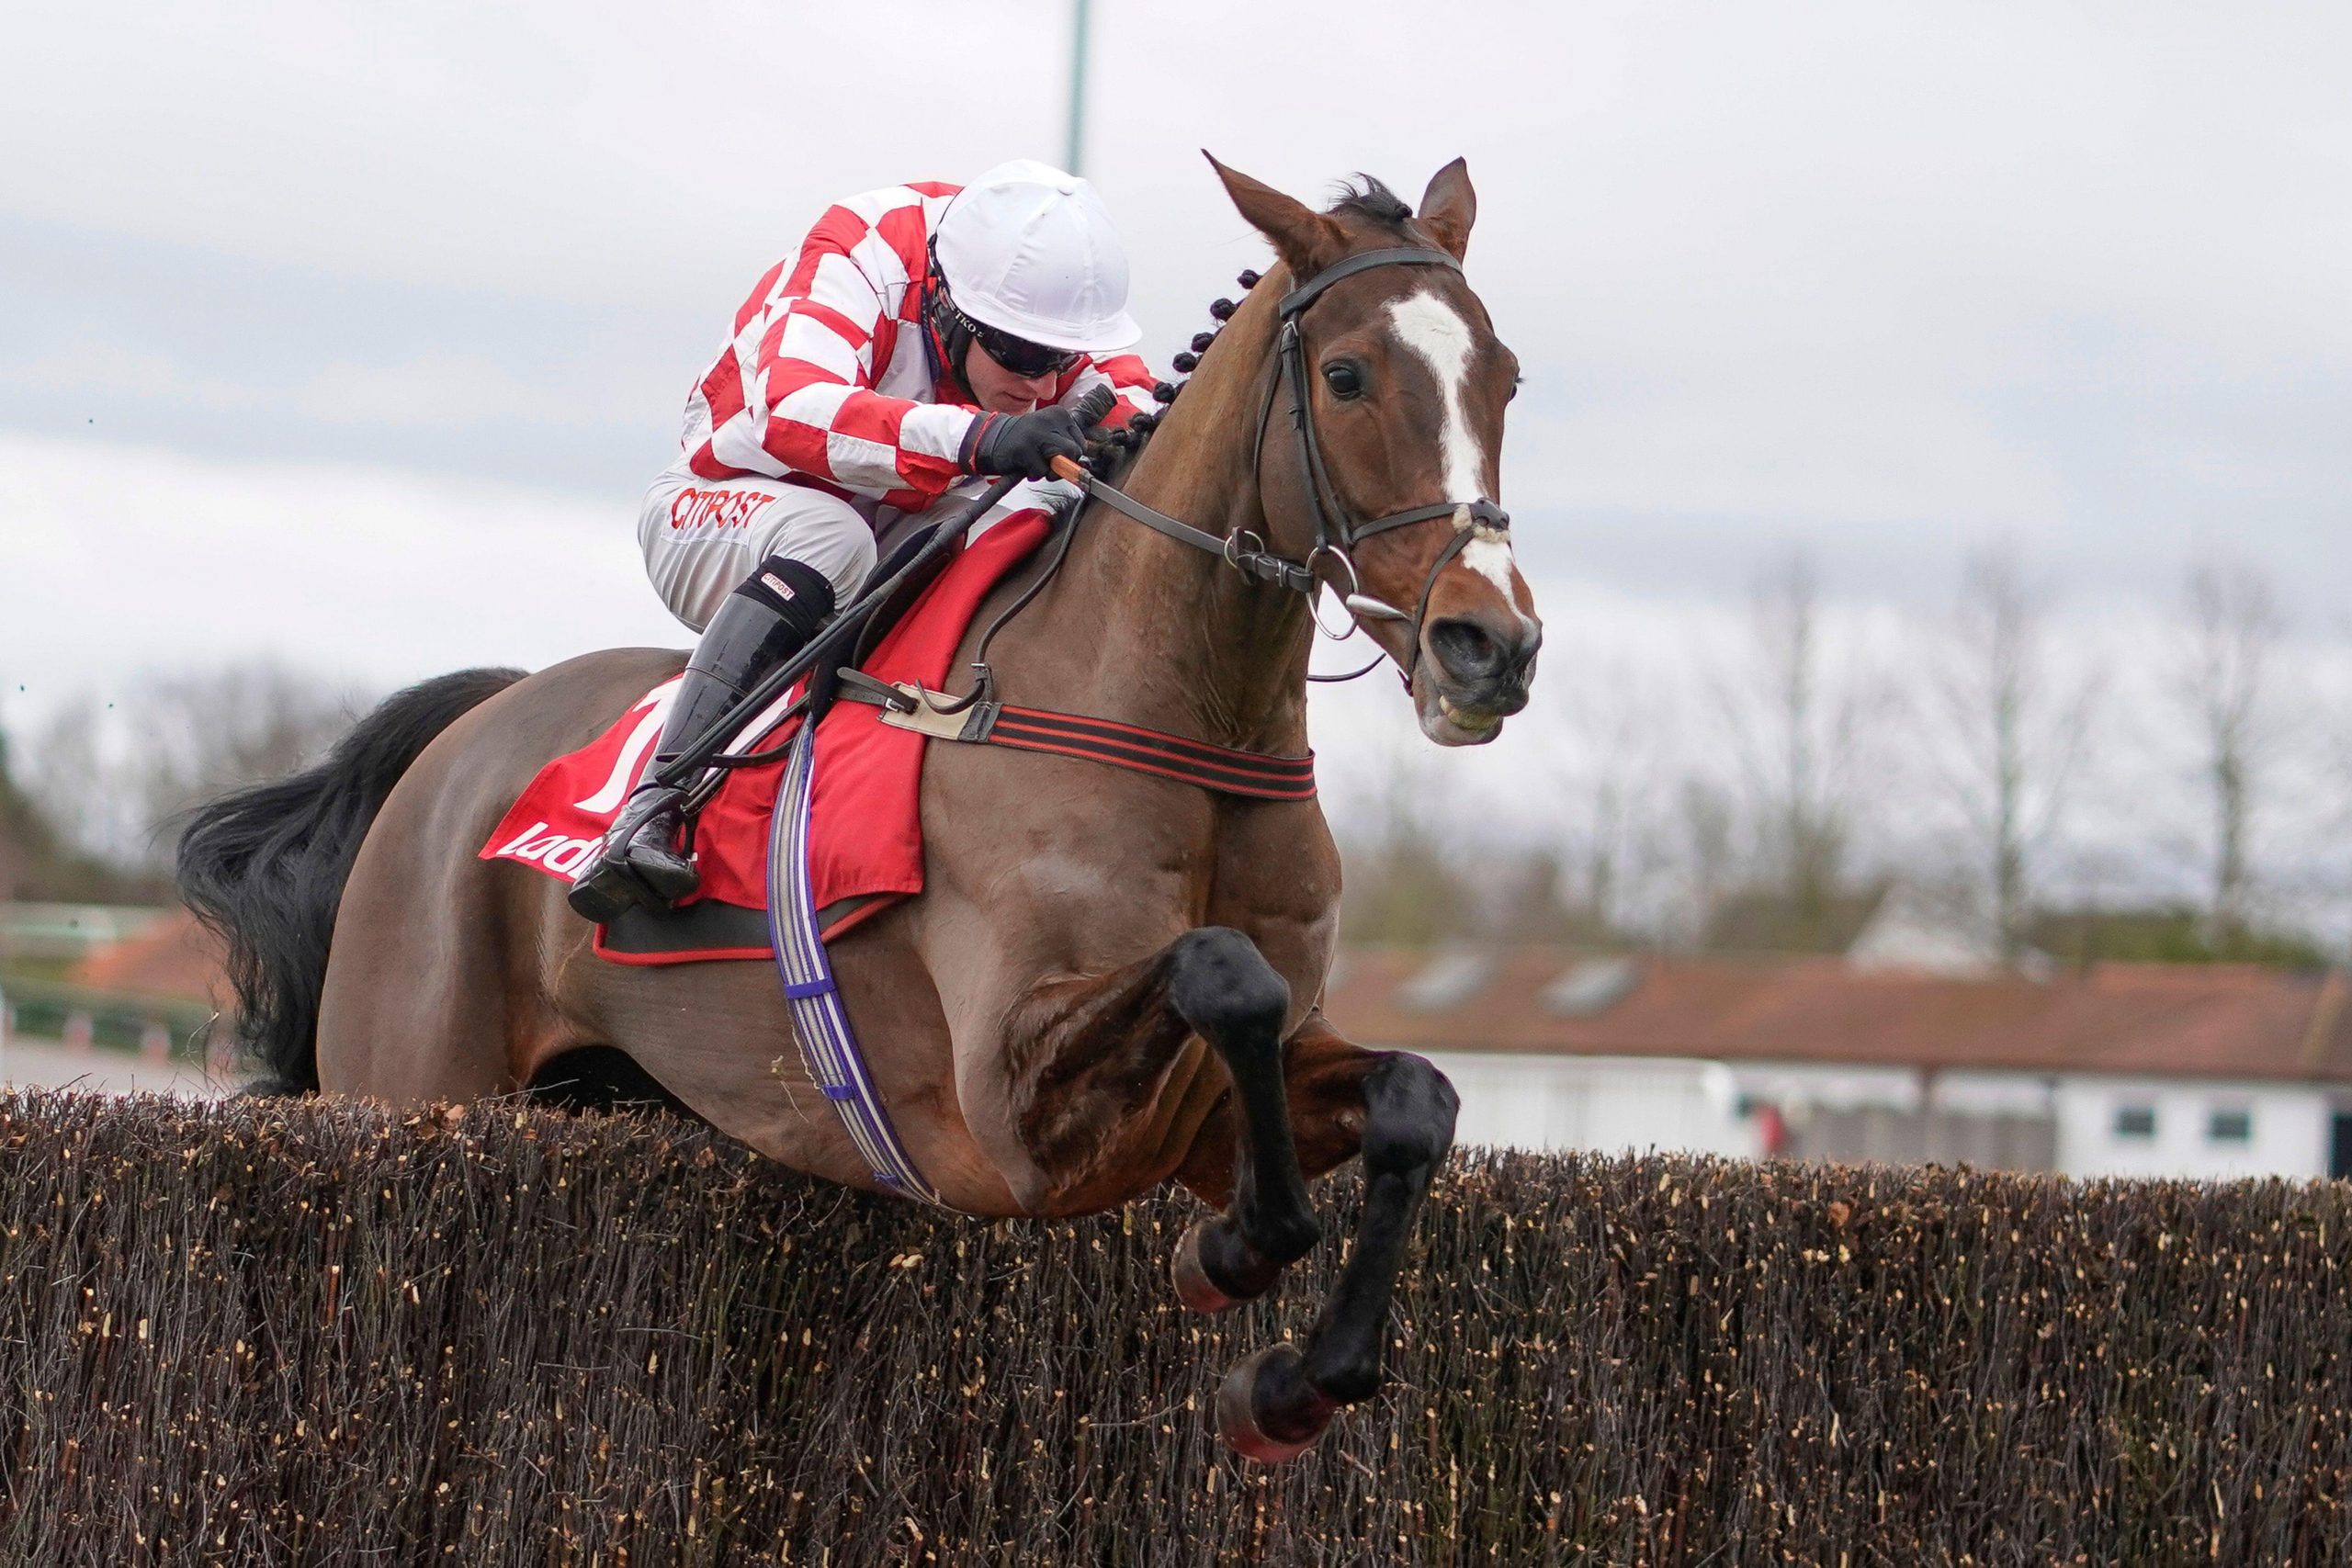 Wedge riding Killer Clown clear the last to win The Play Ladbrokes 5-A-Side On Football Novices' Limited Handicap Chase during King George VI Chase Day of the Ladbrokes Christmas Festival at Kempton Park Racecourse, Sunbury-on-Thames.